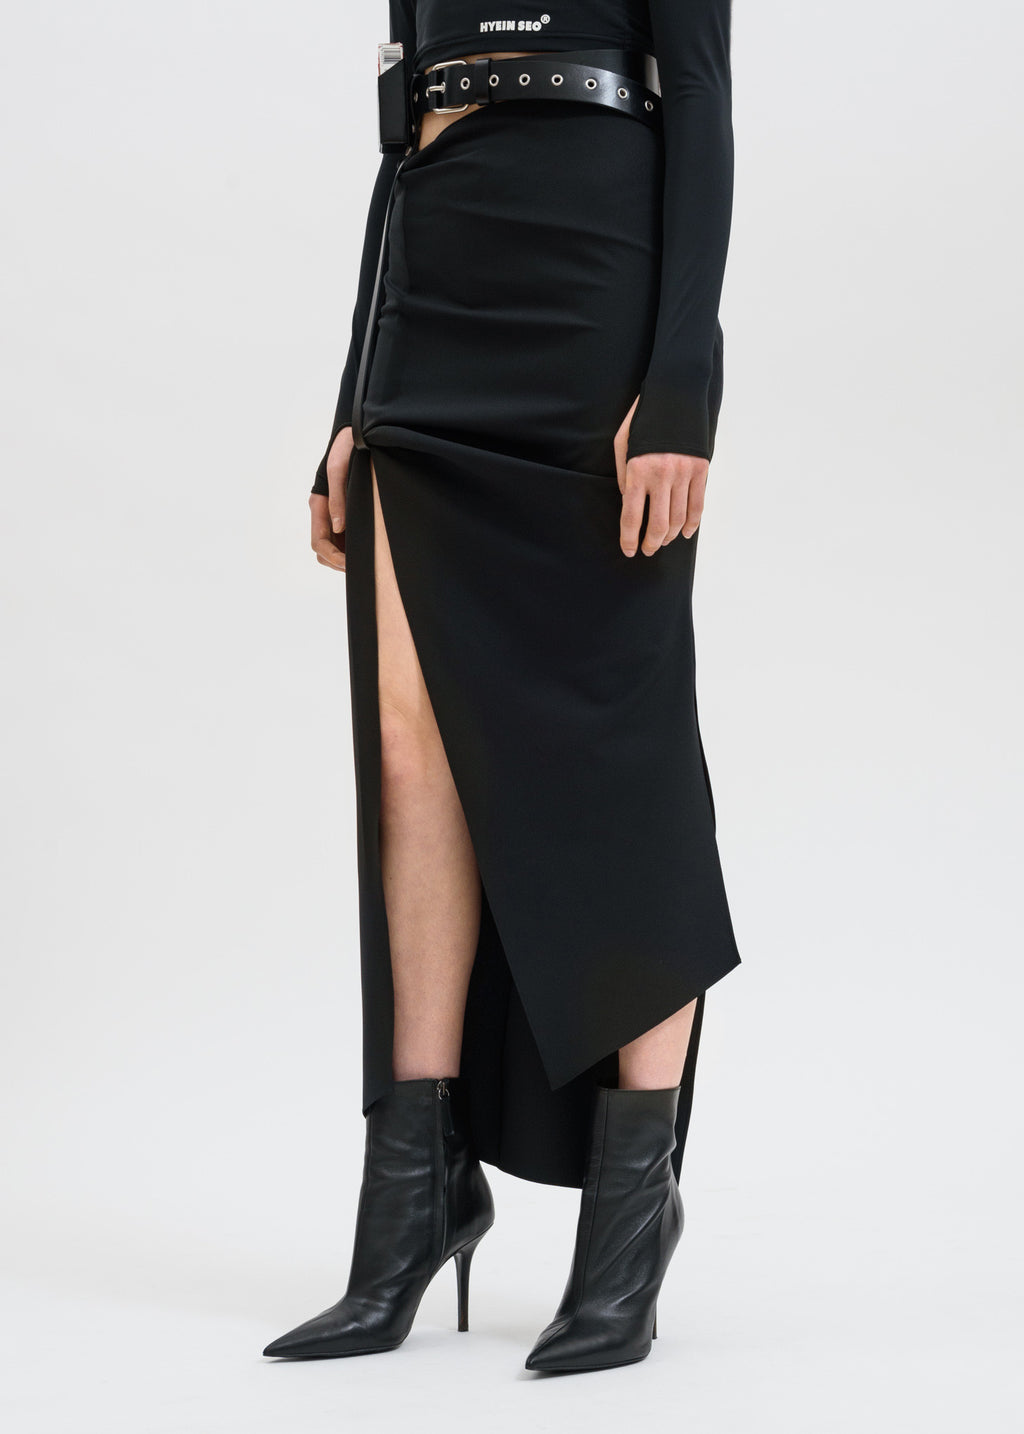 Black Skirt w/ Leather Belt